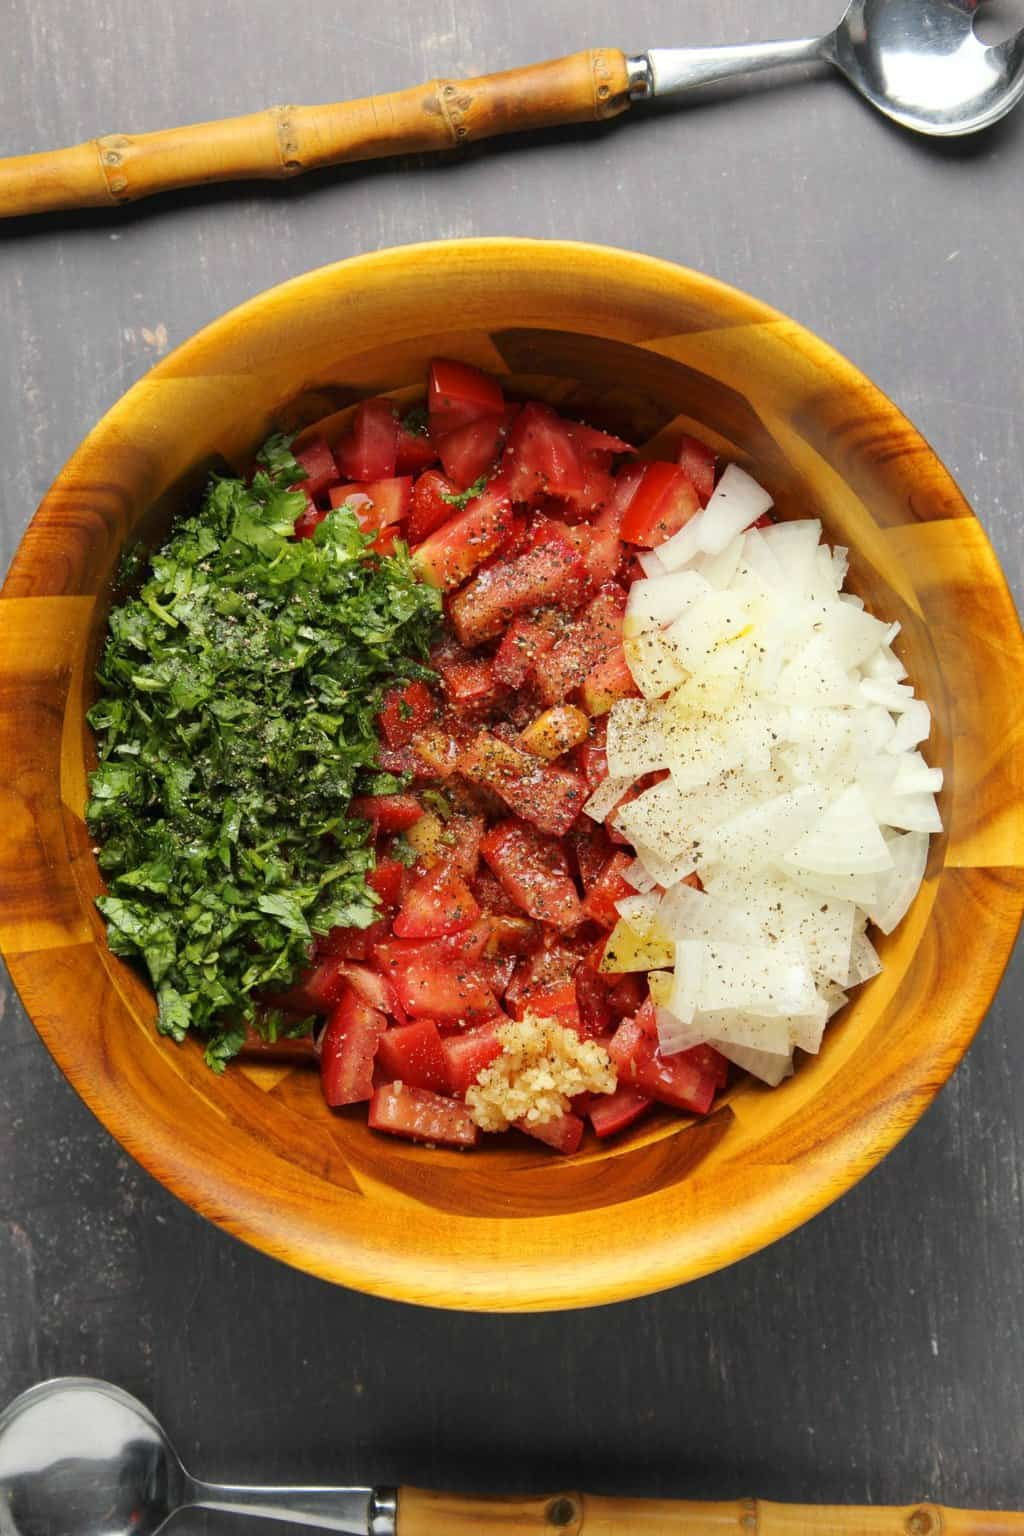 Ingredients for pico de gallo in a wooden bowl ready to be mixed up.